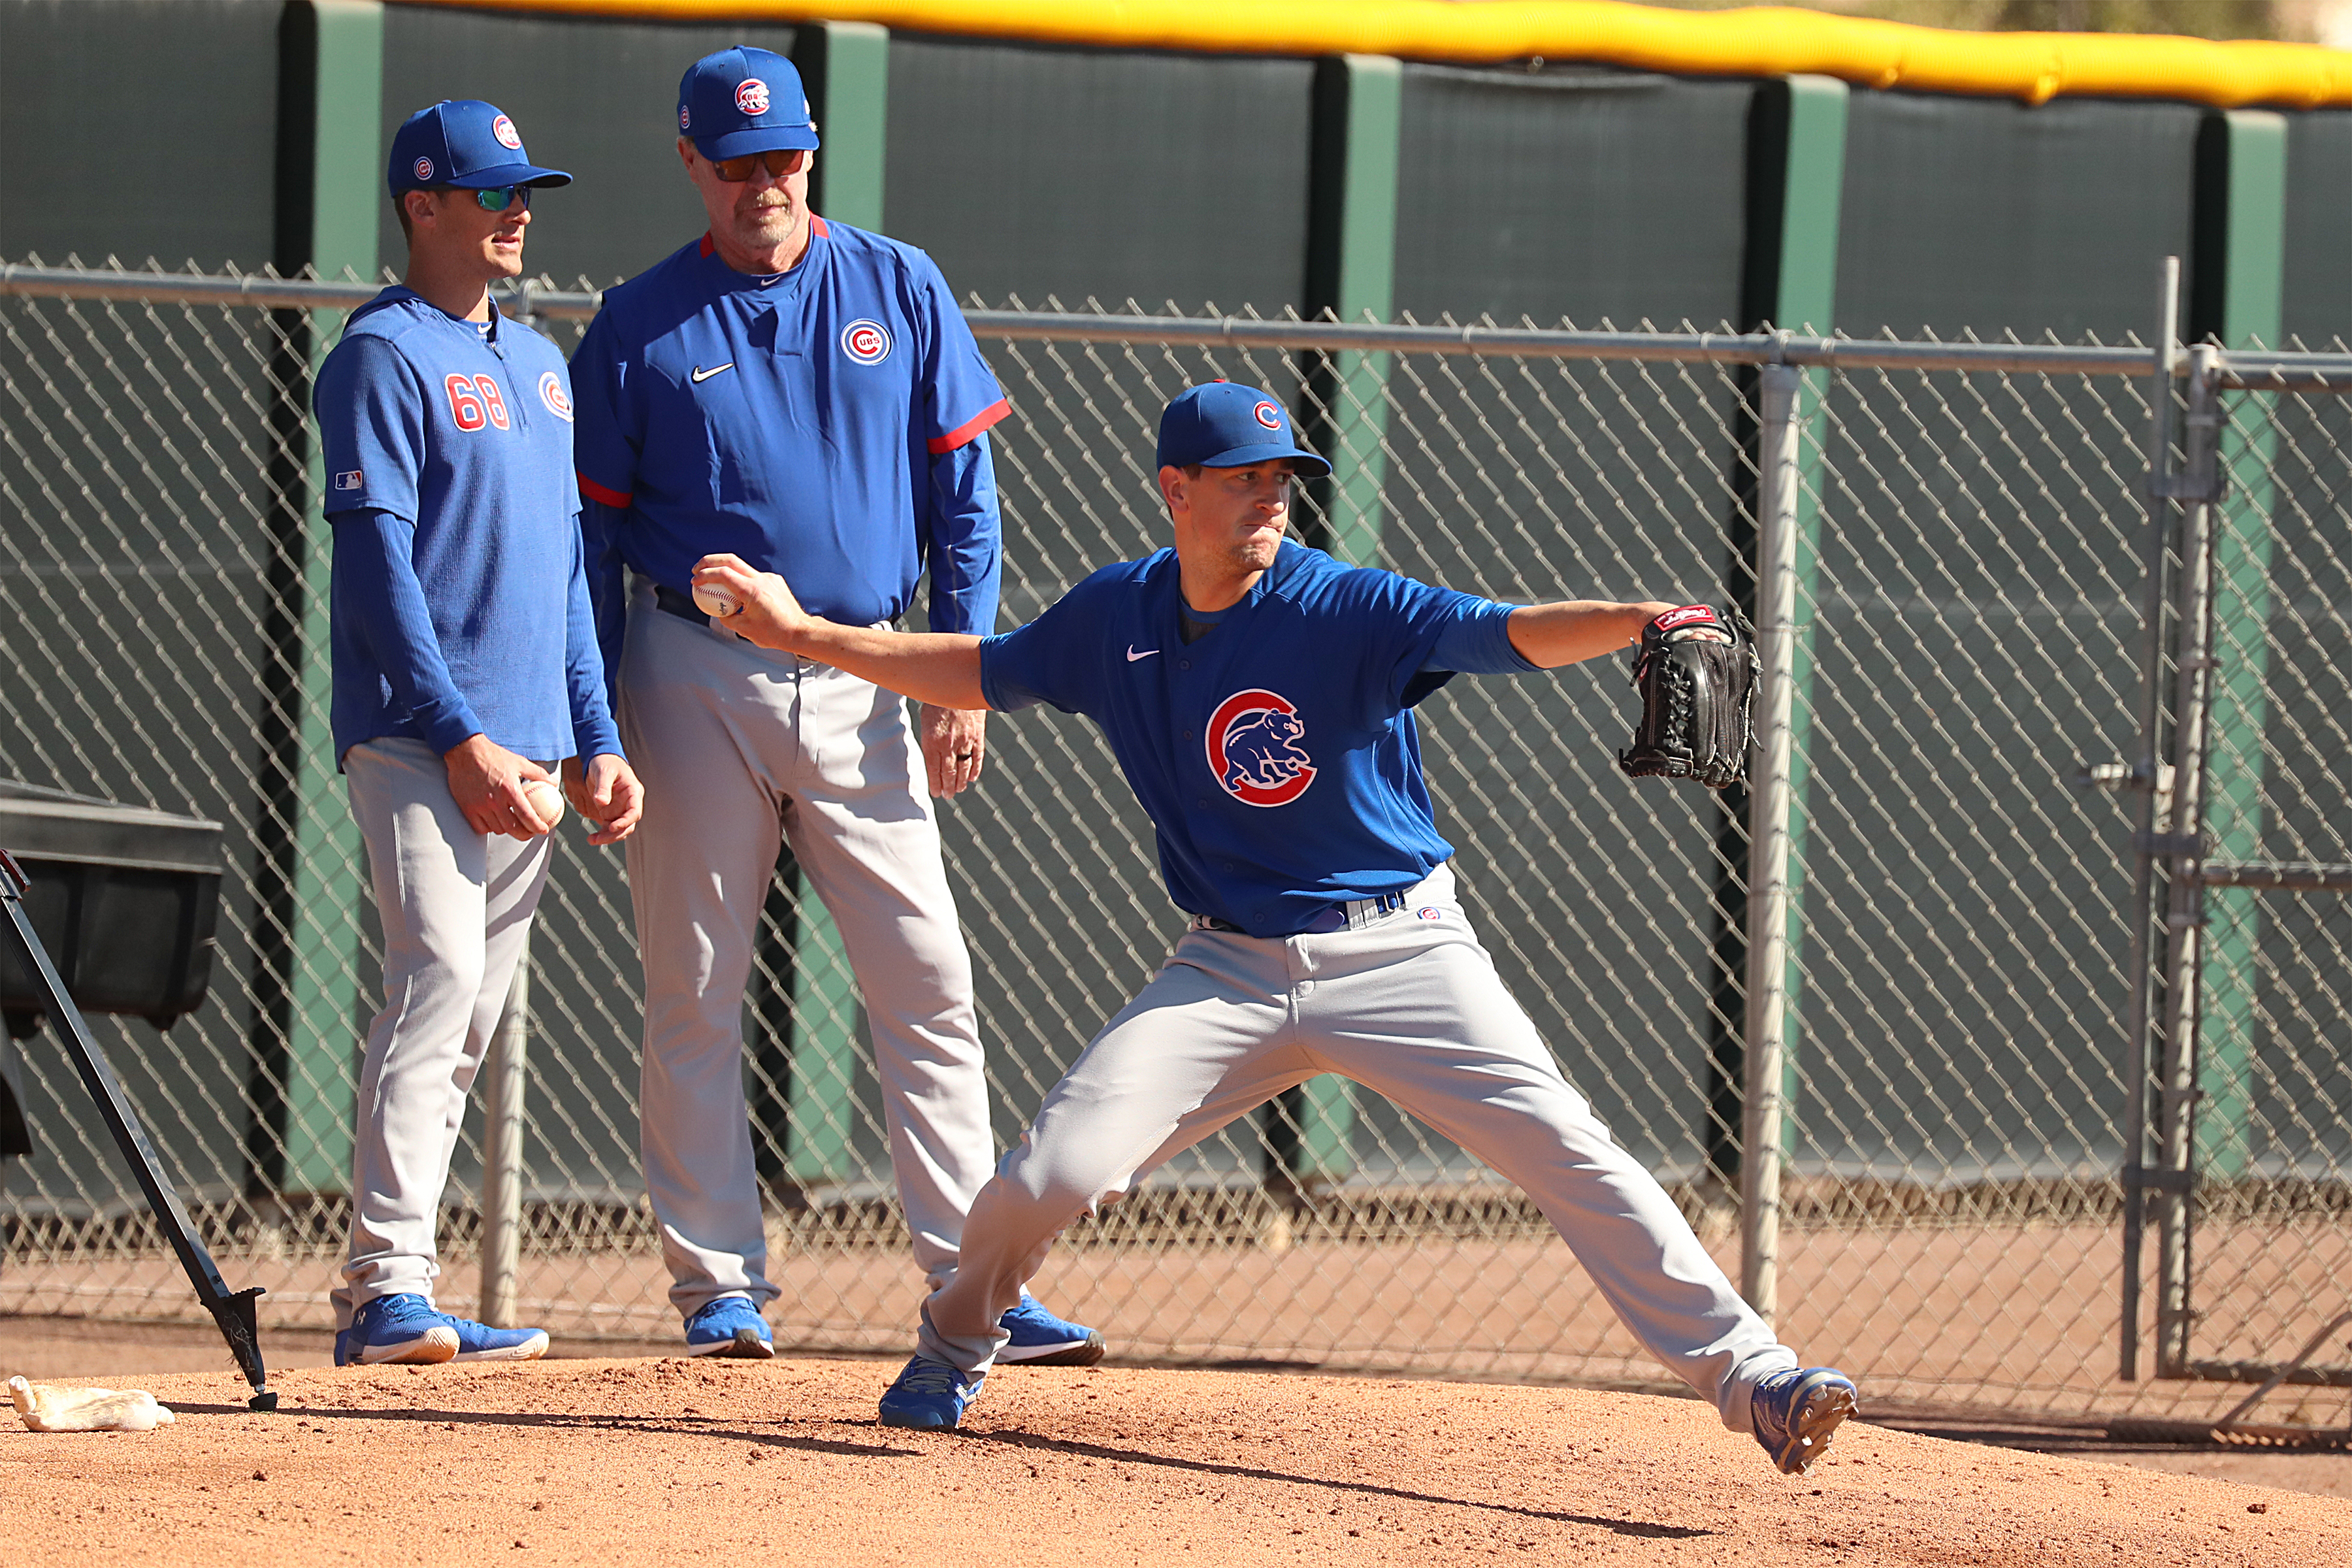 The Cubs' fate in 2021 could be riding on Kyle Hendricks and the rest of the starting rotation.